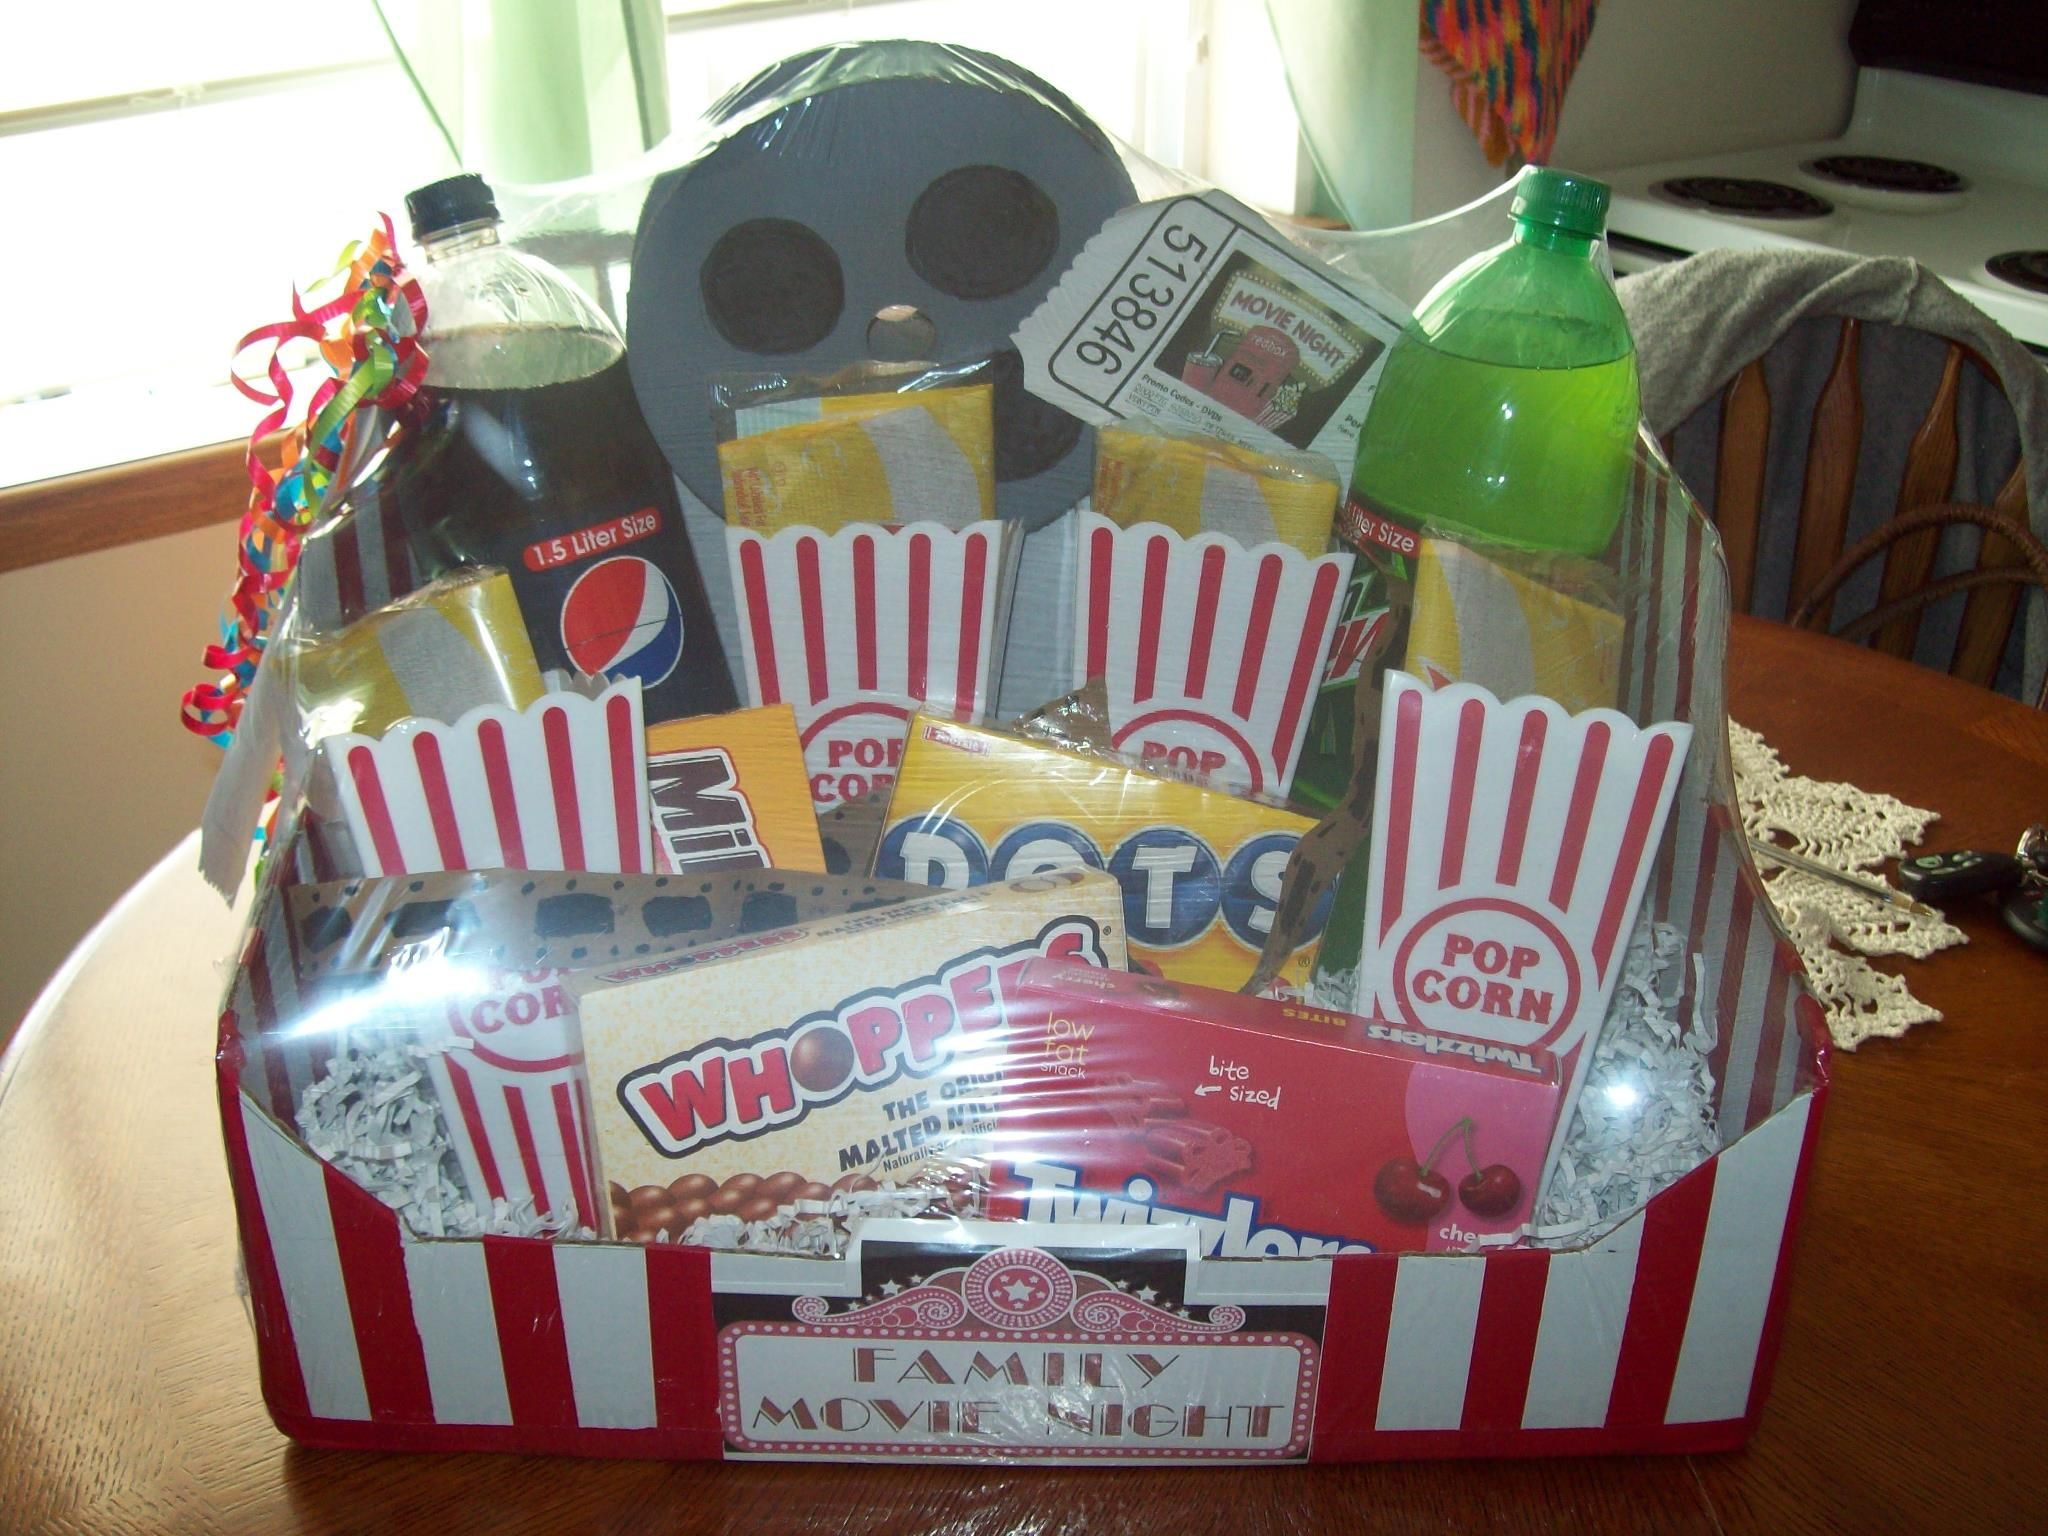 Family movie night gift box great gift idea for a